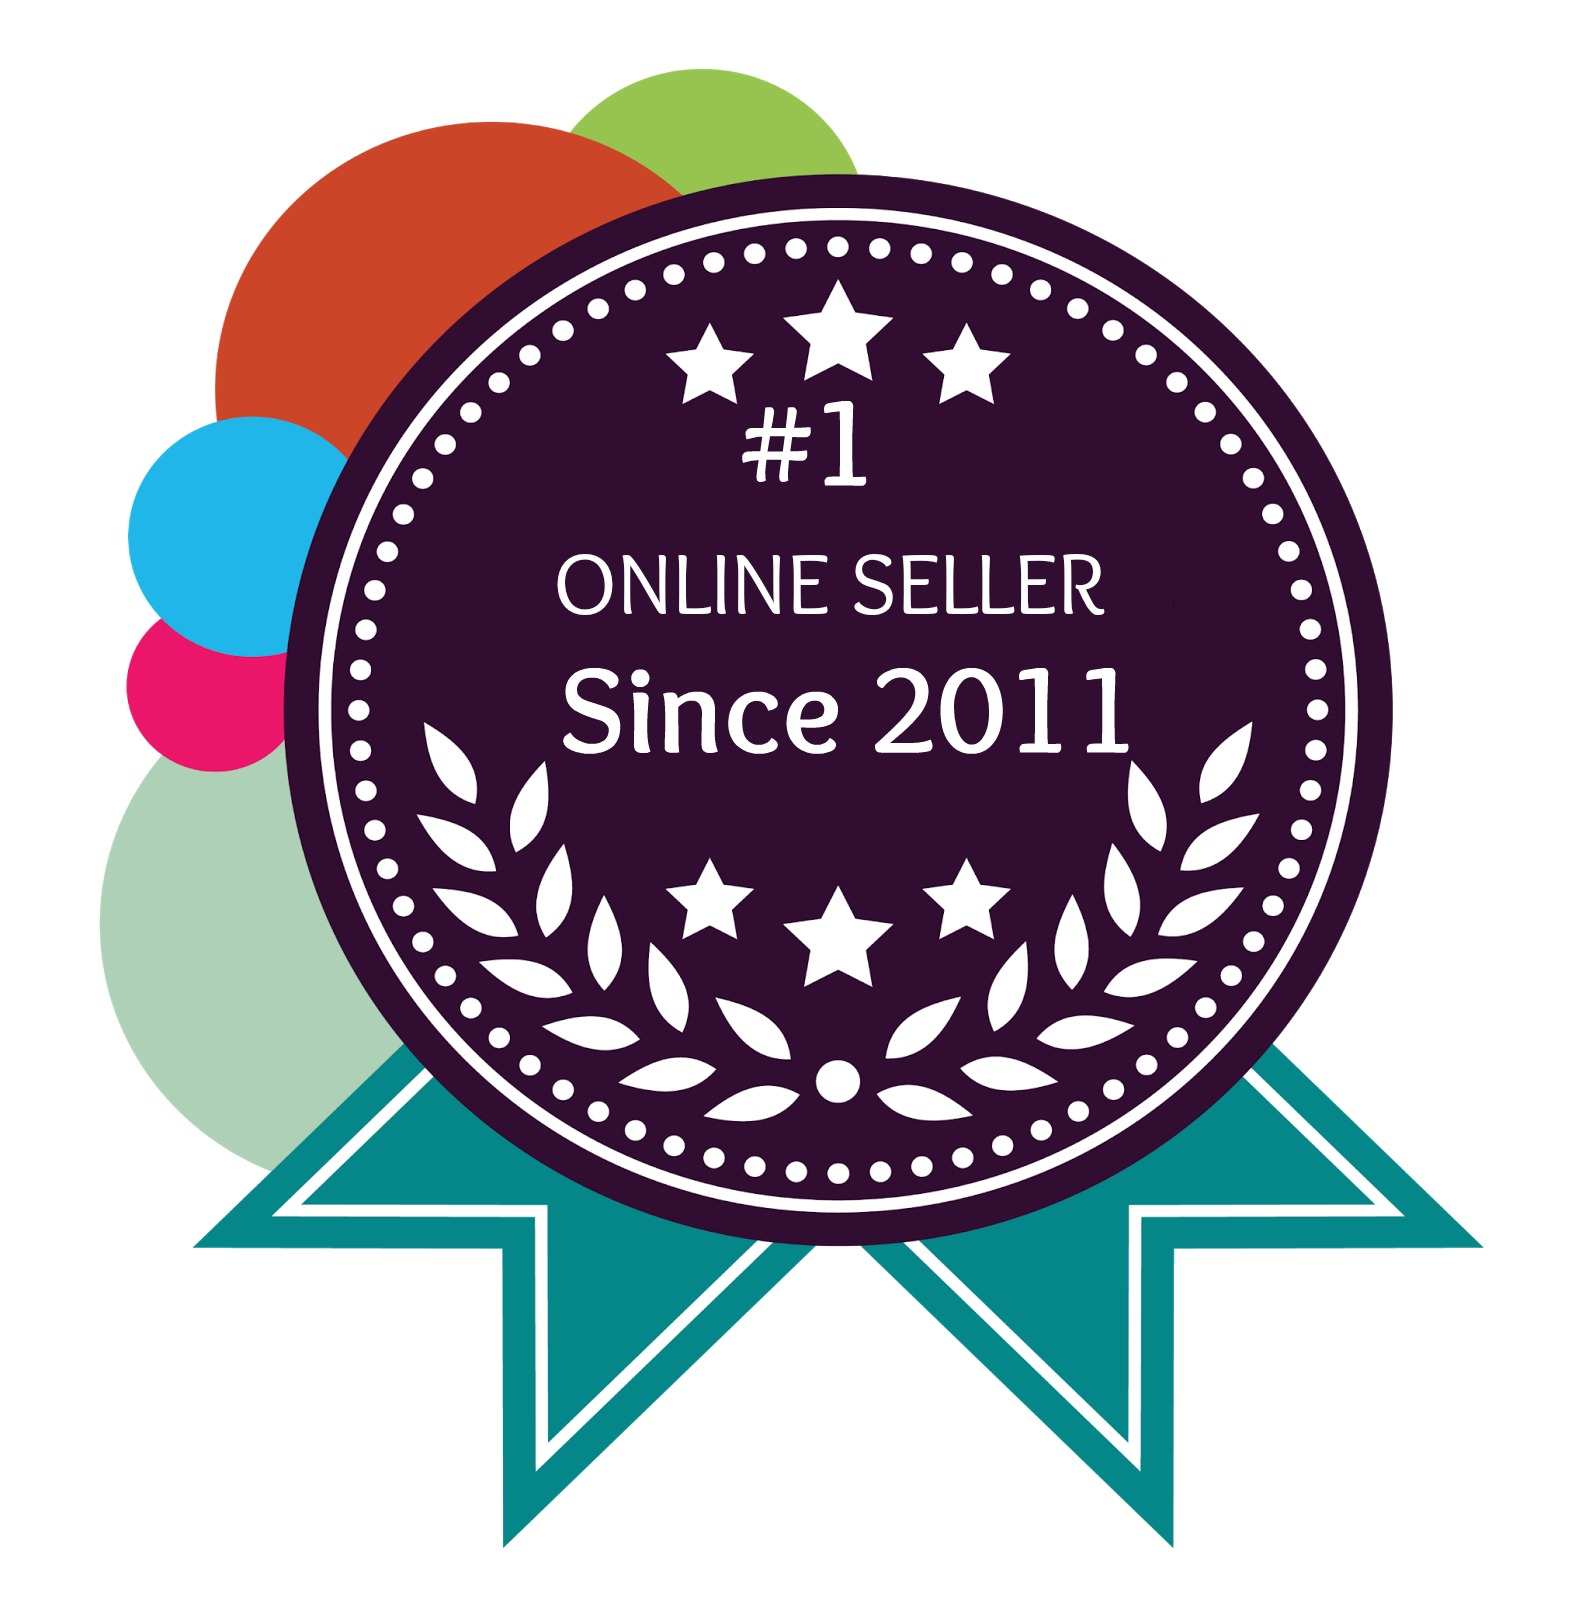 QUANTUMIN PLUS # 1 ONLINE SELLER SINCE 2011